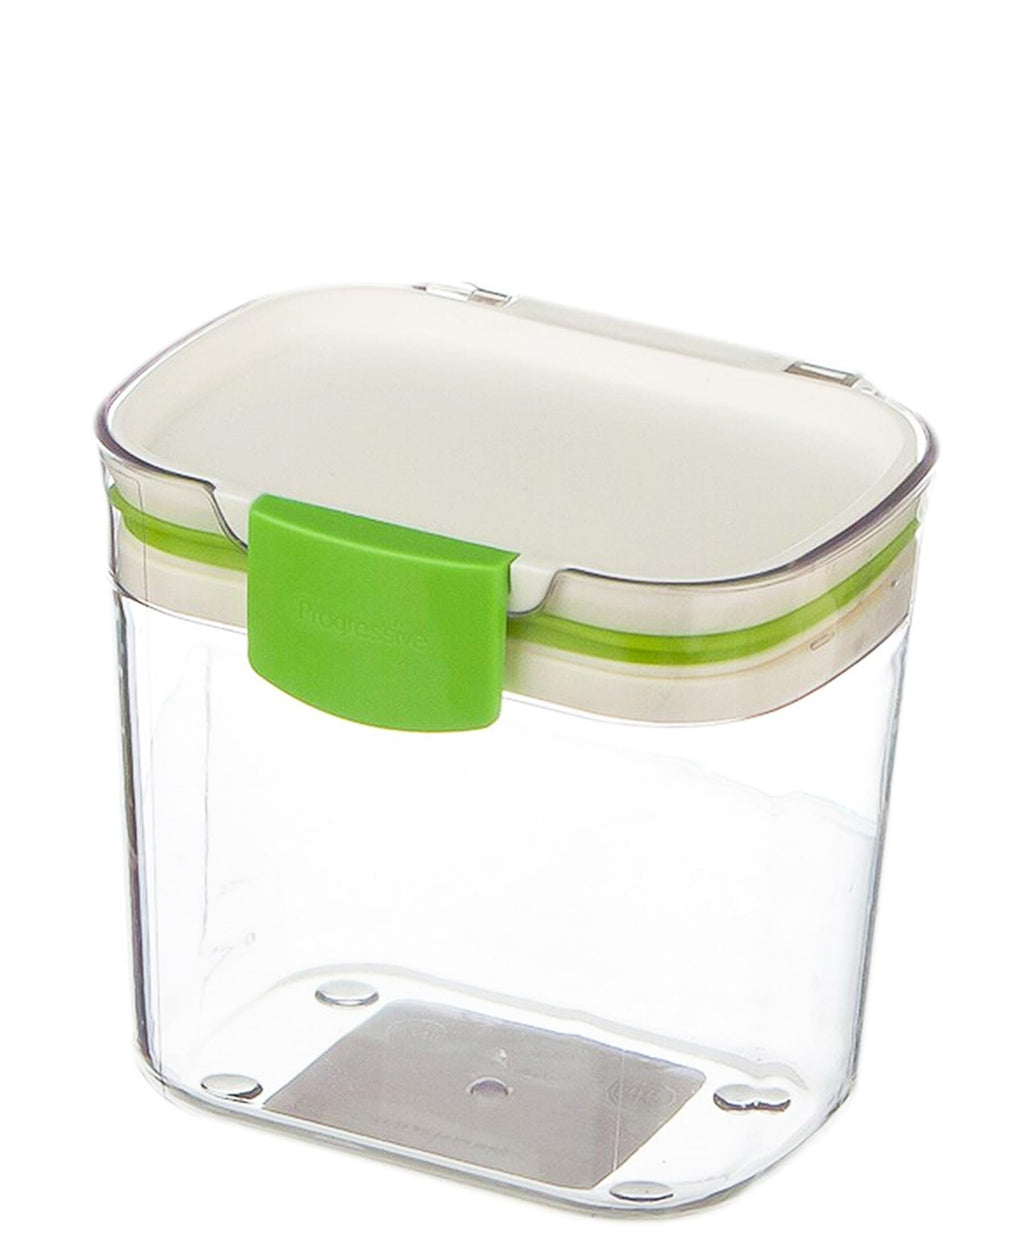 Progressive Mini Prokeeper Container - Green